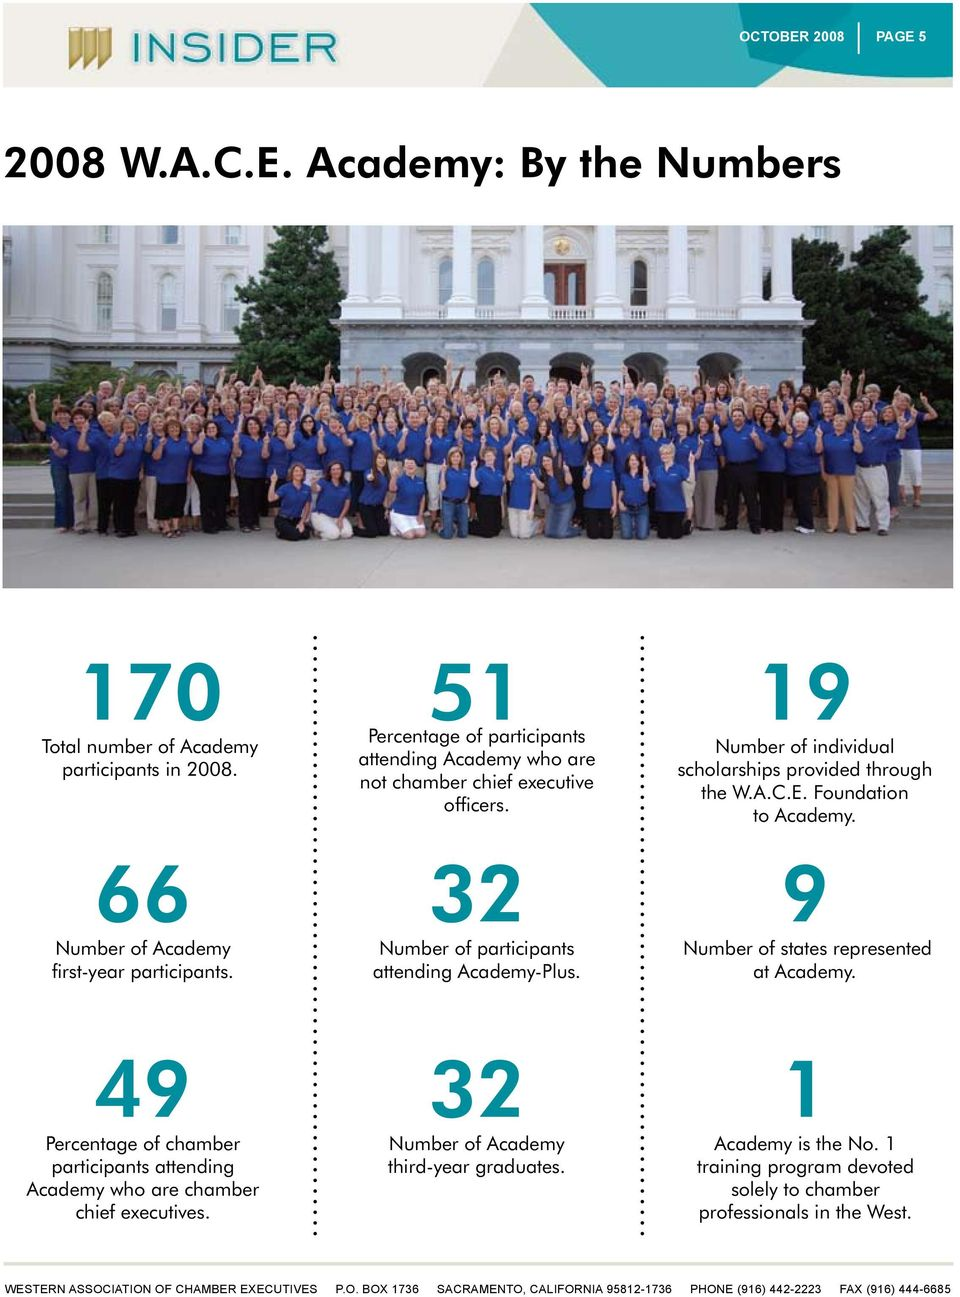 19 Number of individual scholarships provided through the W.A.C.E. Foundation to Academy. 9 Number of states represented at Academy.